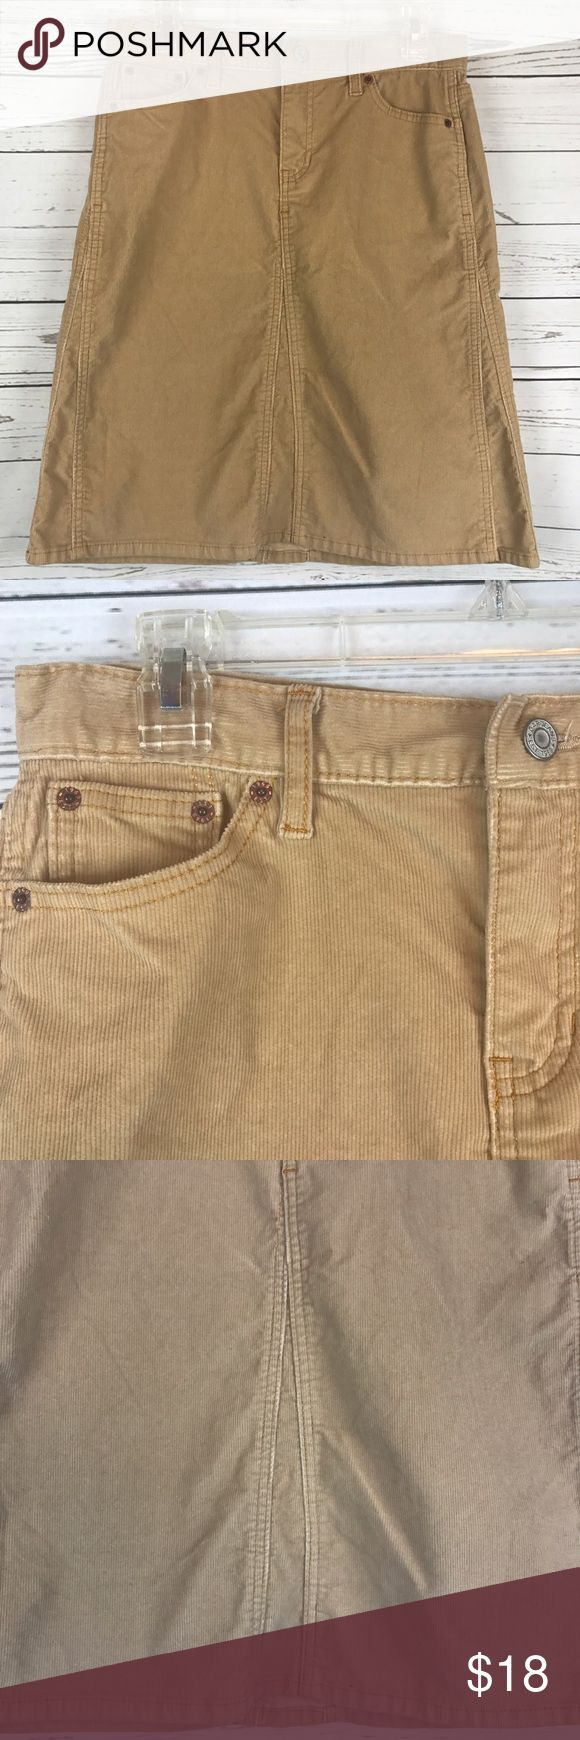 """GAP Skirt corduroy tan knee length career GAP Jeans women's size 6 corduroy knee length skirt. Tan color. Front pockets. Belt loops. Gently used, no flaws.   Measurements while laying flat Waist: 15.5"""" Length: 22""""  C42 GAP Skirts Pencil"""